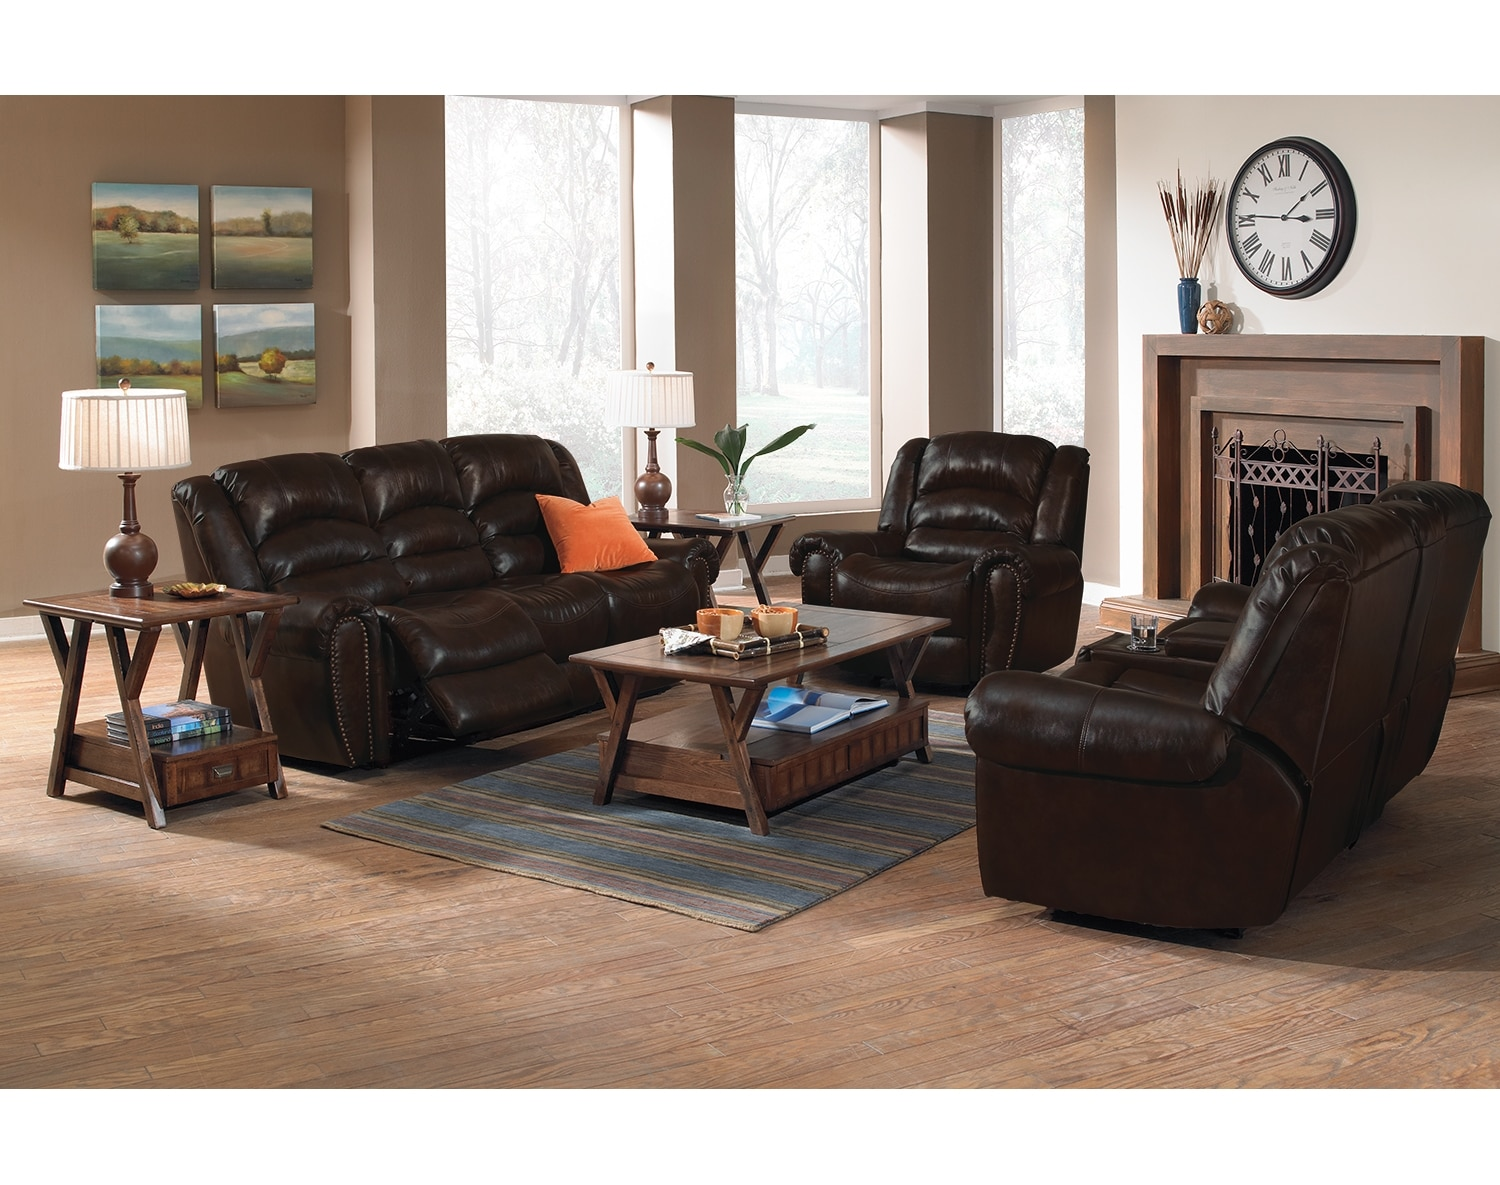 Living Room Furniture - The Collinsville Collection - Reclining Sofa